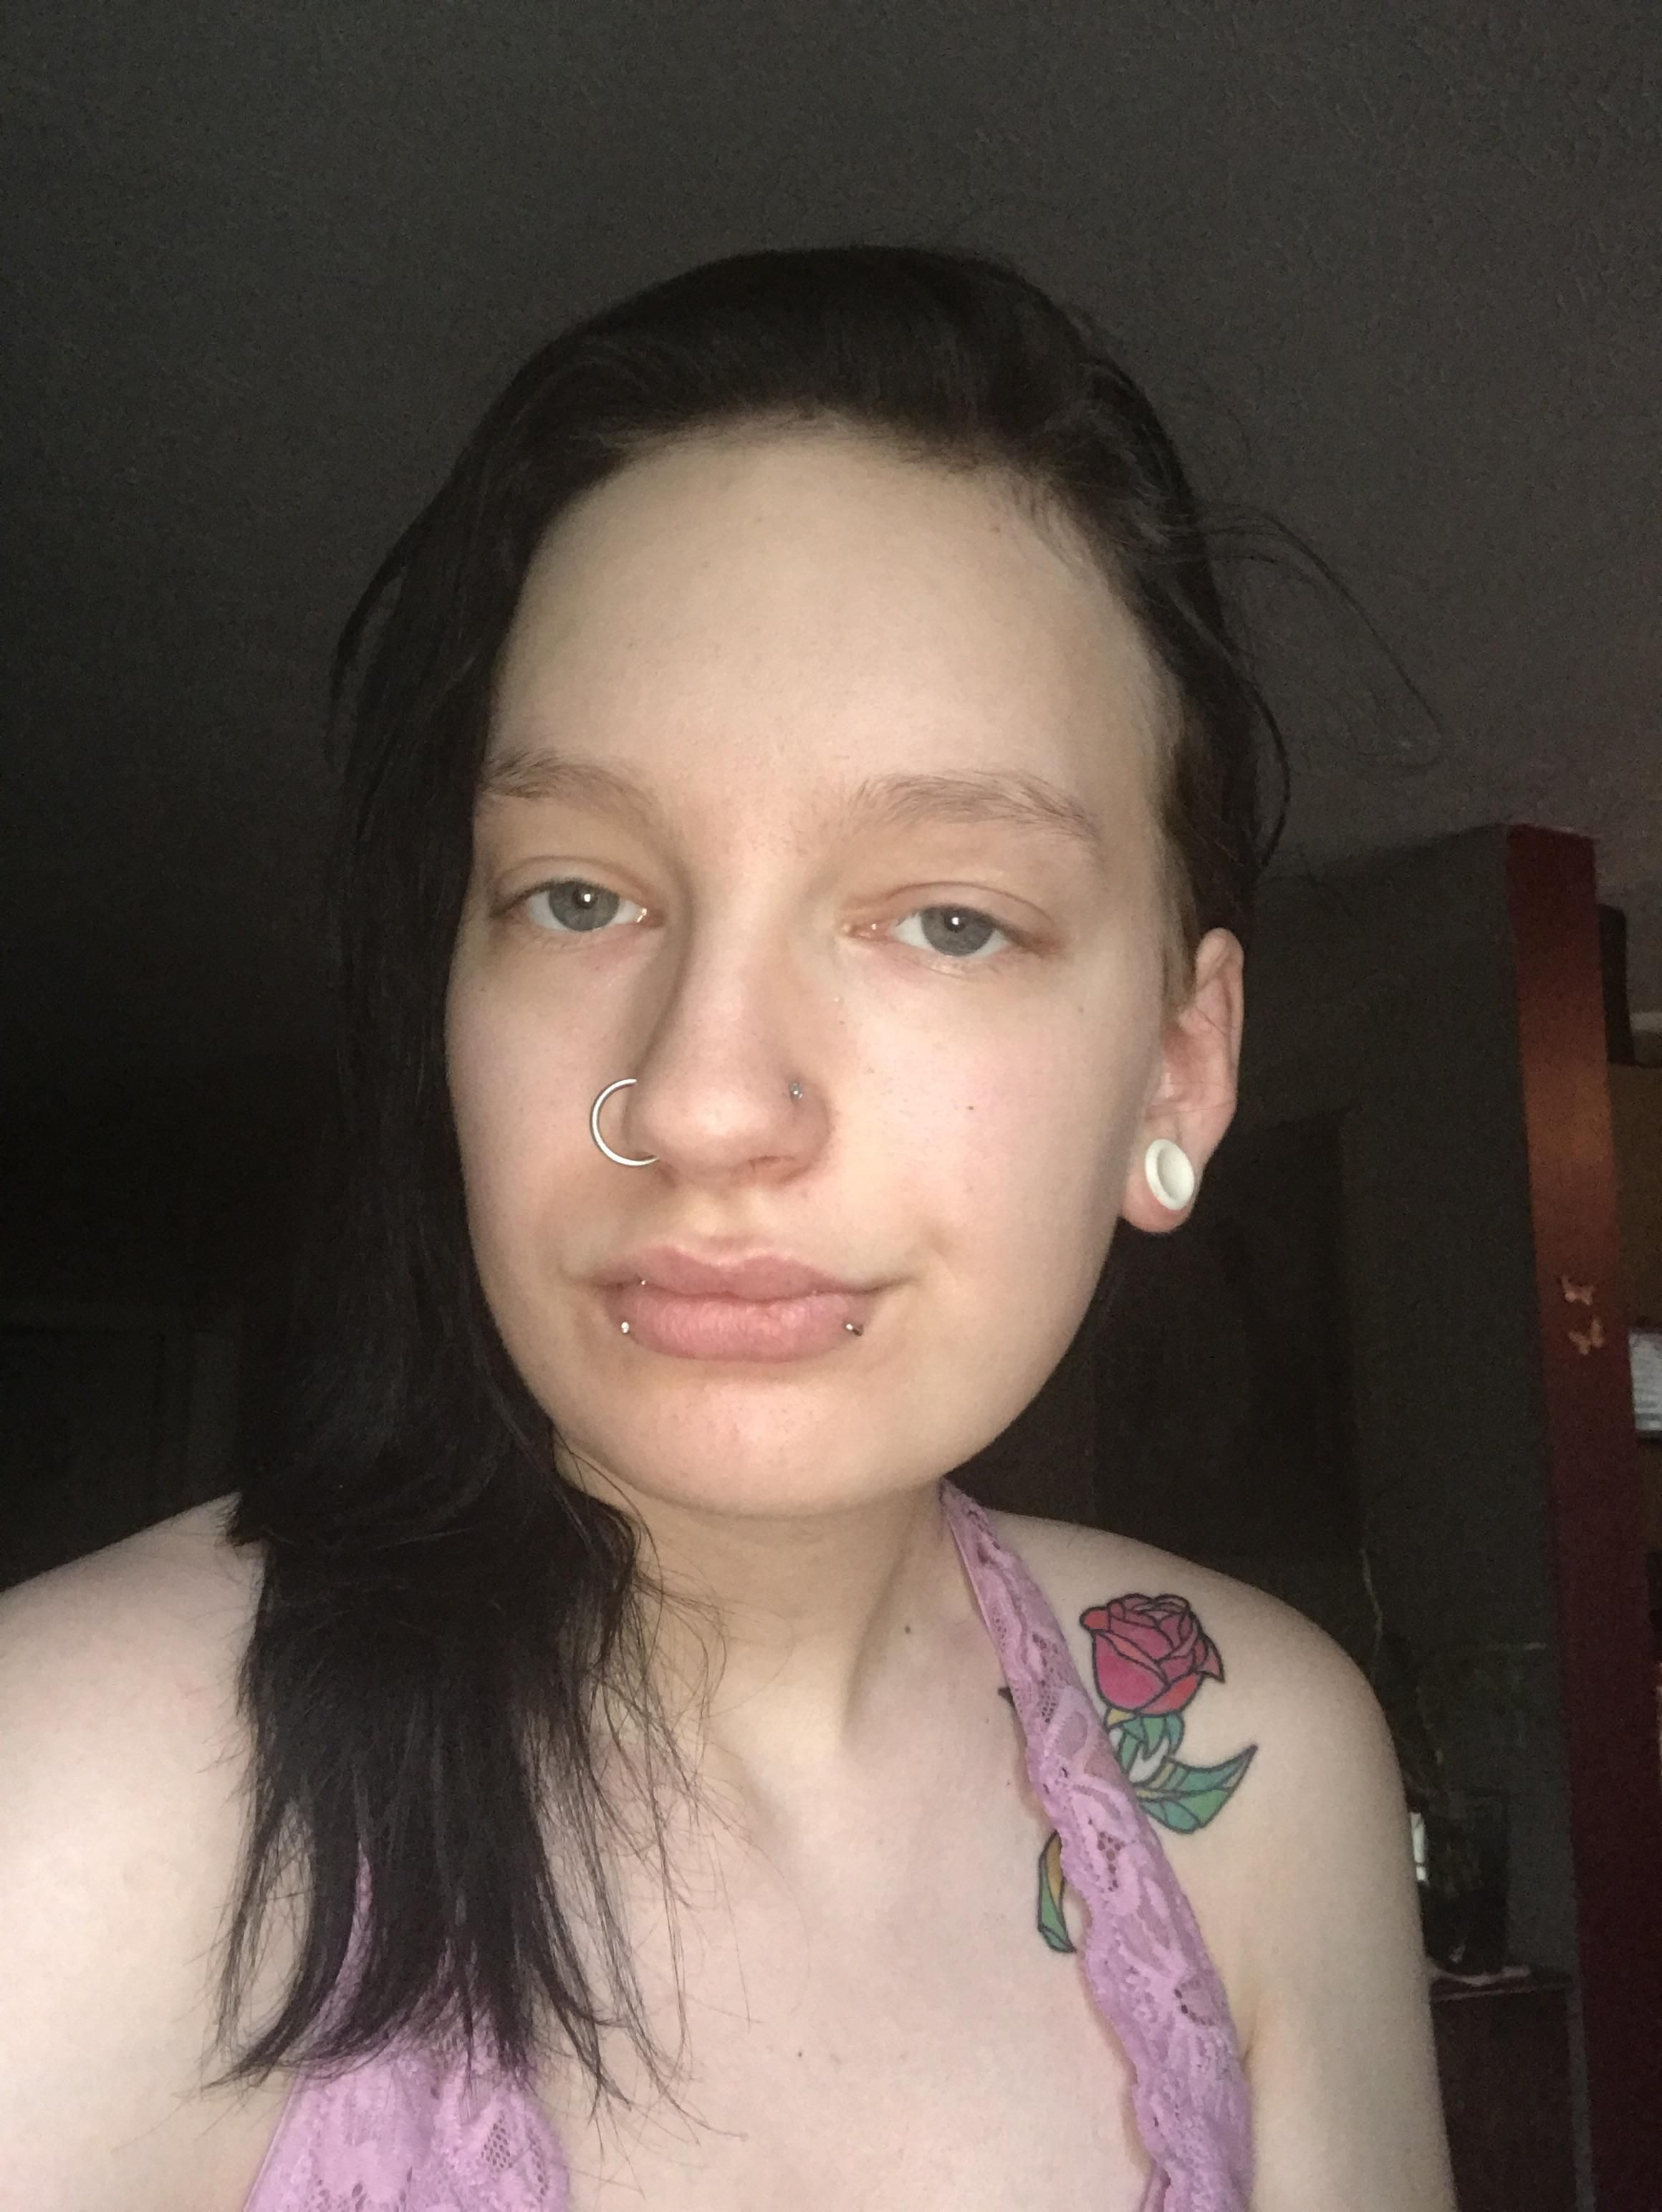 Just Dyed My Hair Black Opinions And Should I Dye My Brows Hair Beauty Skin Deals Me Fashion Love Cute Style Women Dye My Hair My Hair Black Hair